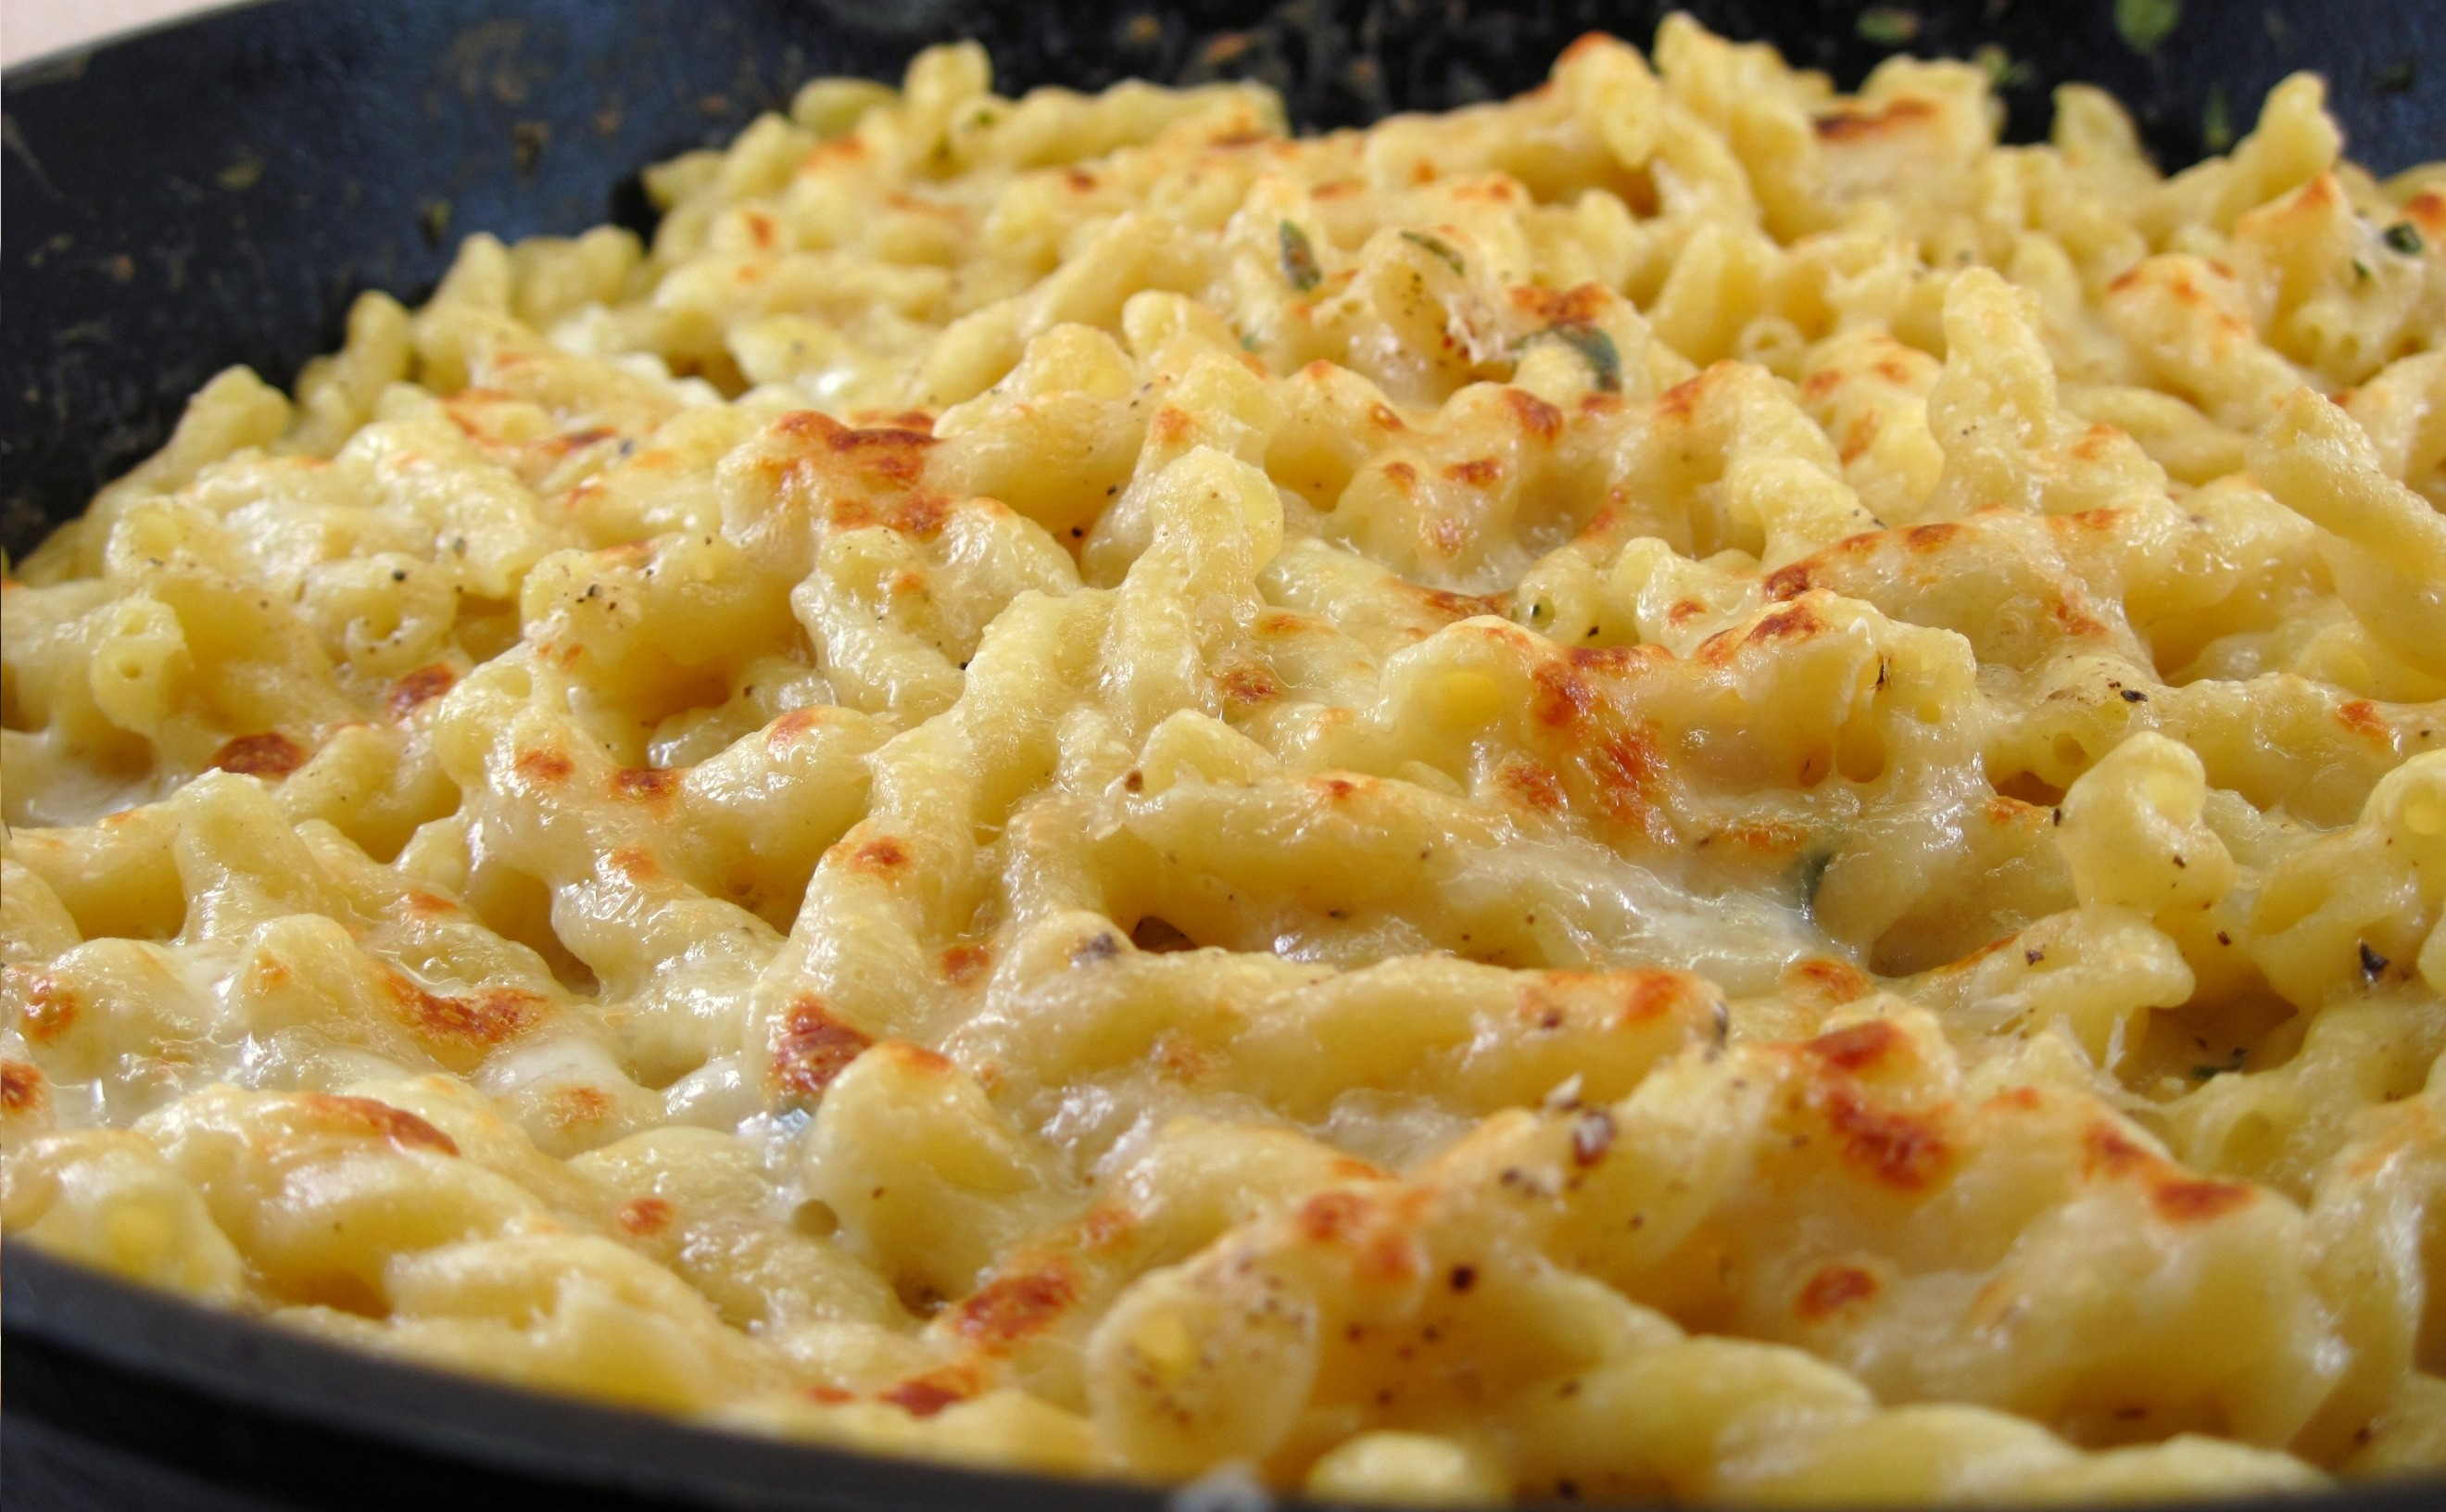 Macaroni And Cheese Recipe — Dishmaps